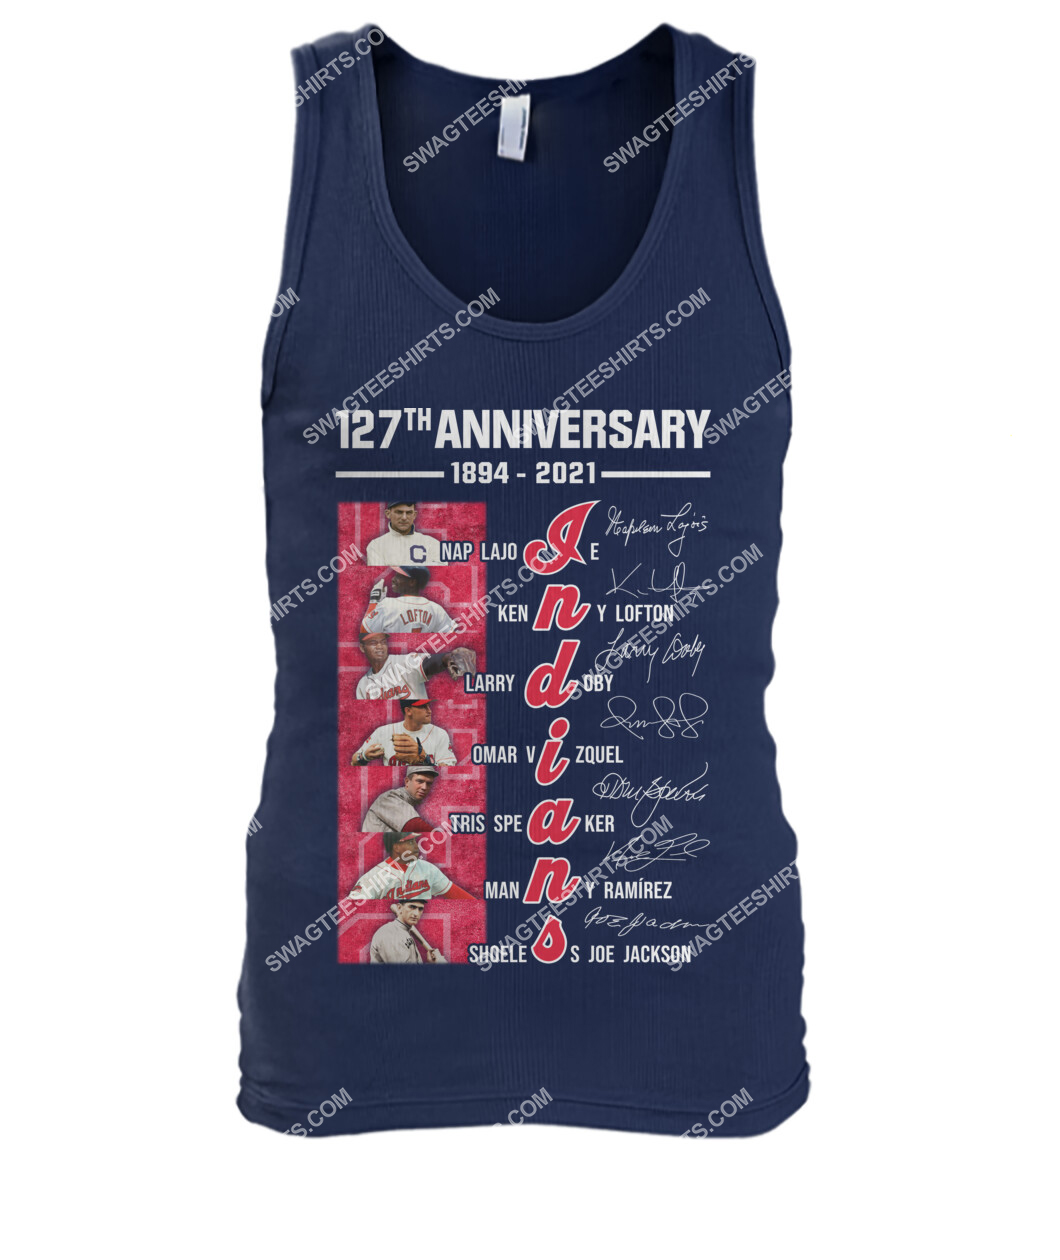 the cleveland indians 127th anniversary 1894 2021 signatures mlb tank top 1